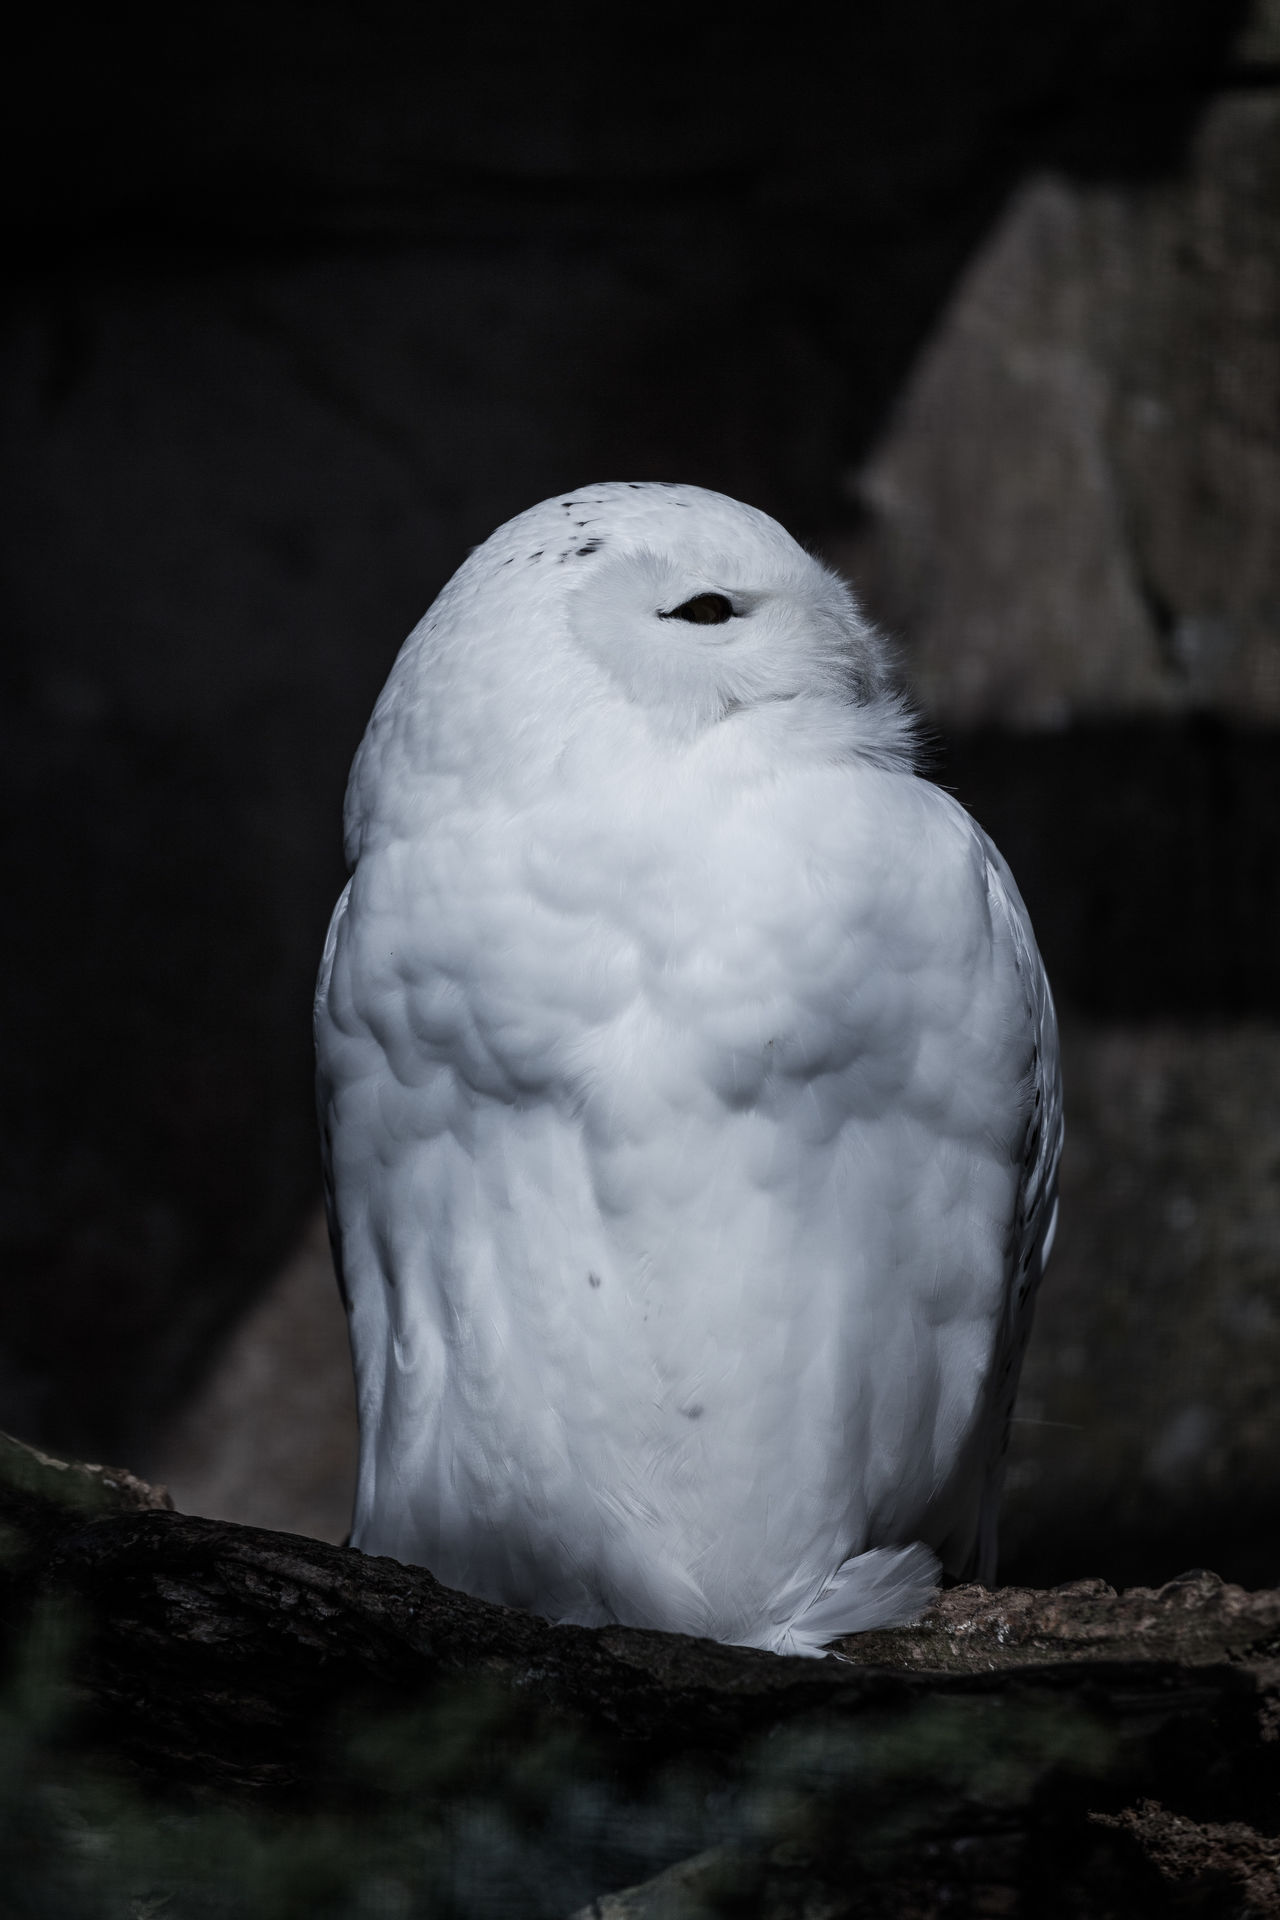 animal wildlife Animals in the Wild awaking black and white cold temperature darkness and beauty darkness and light eye Feathers light and shadow Looking At Camera minimal minimalobsession Natural Beauty Nature photography naturelovers Night Photography Nightphotography owl sleeping snow warm clothing white Winter Wintertime Let there be Snow - Said That Snow Owl